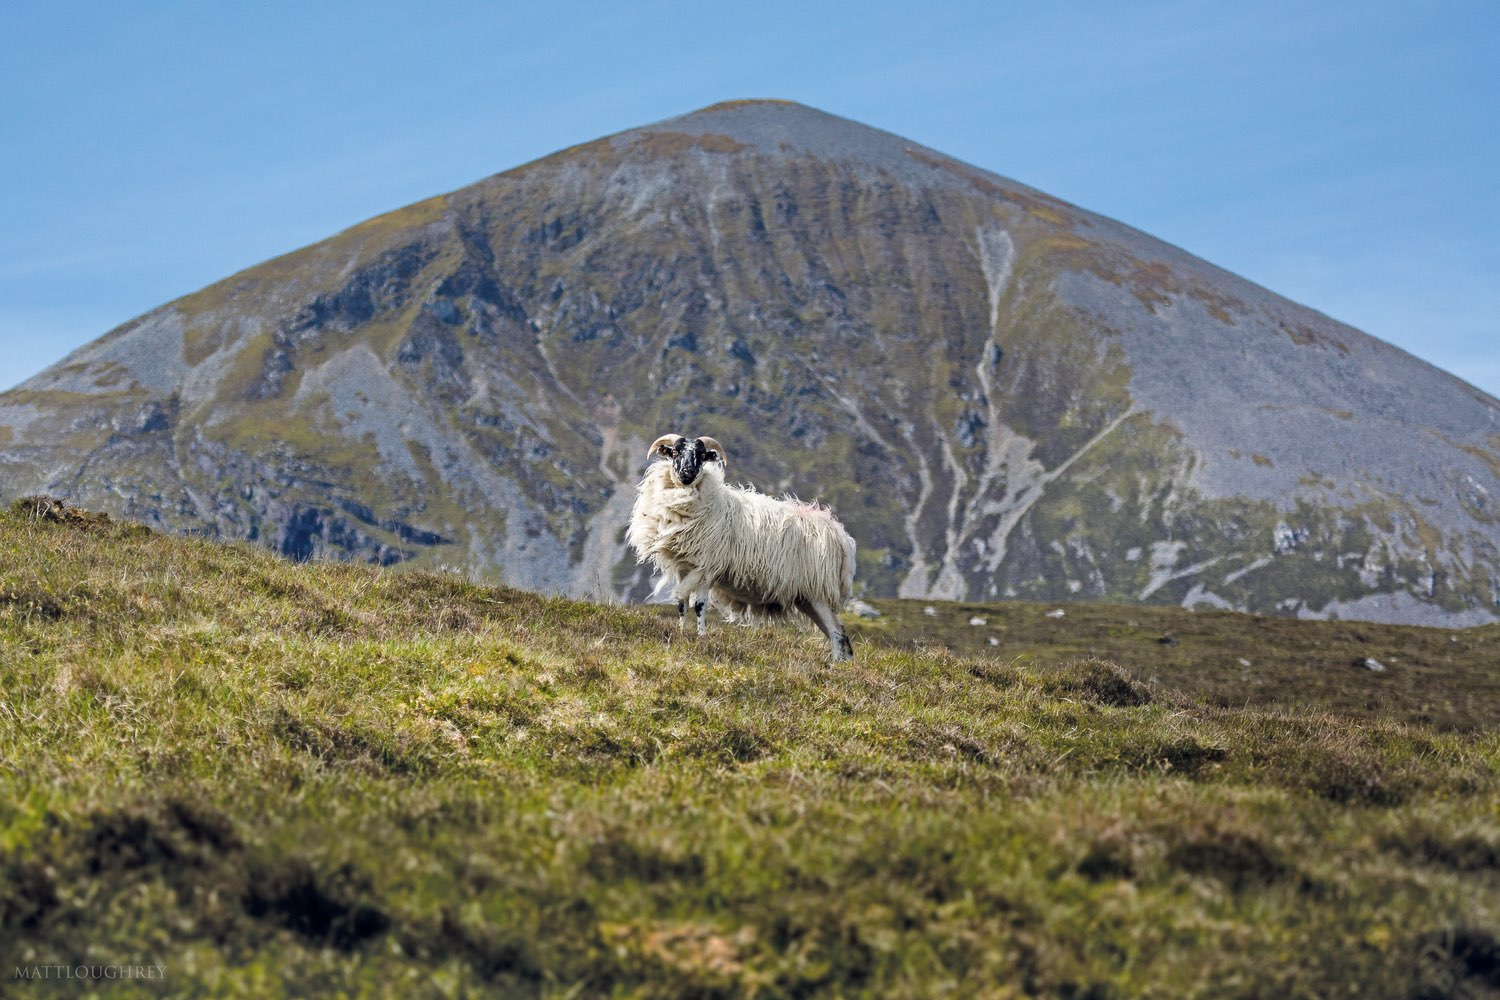 A common sight in Connemara, mountain sheep often dot the grasslands surrounding the foothills of Croagh Patrick.